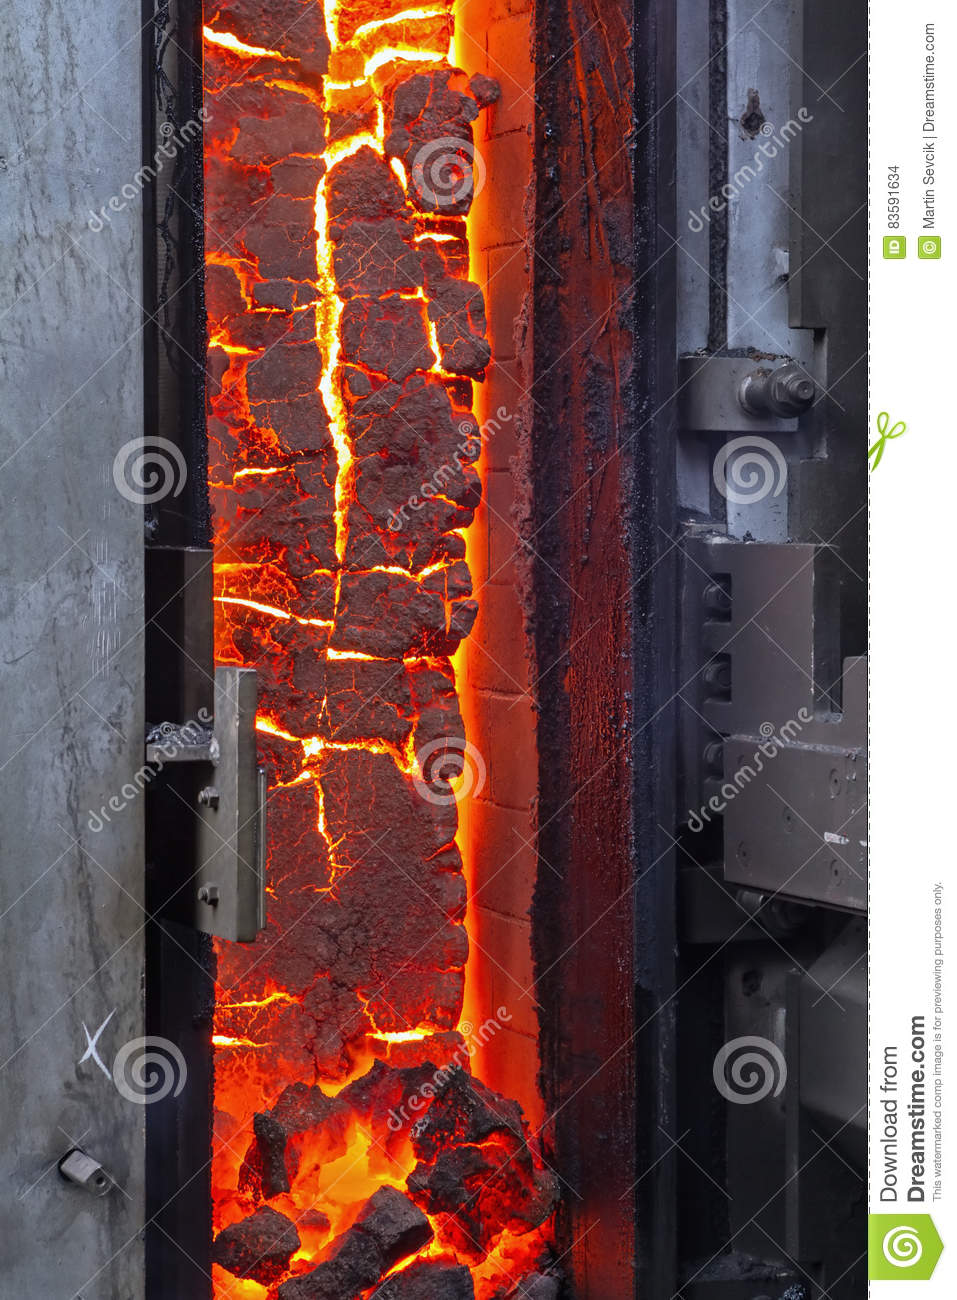 Coke Oven Stock Photos Royalty Free Images